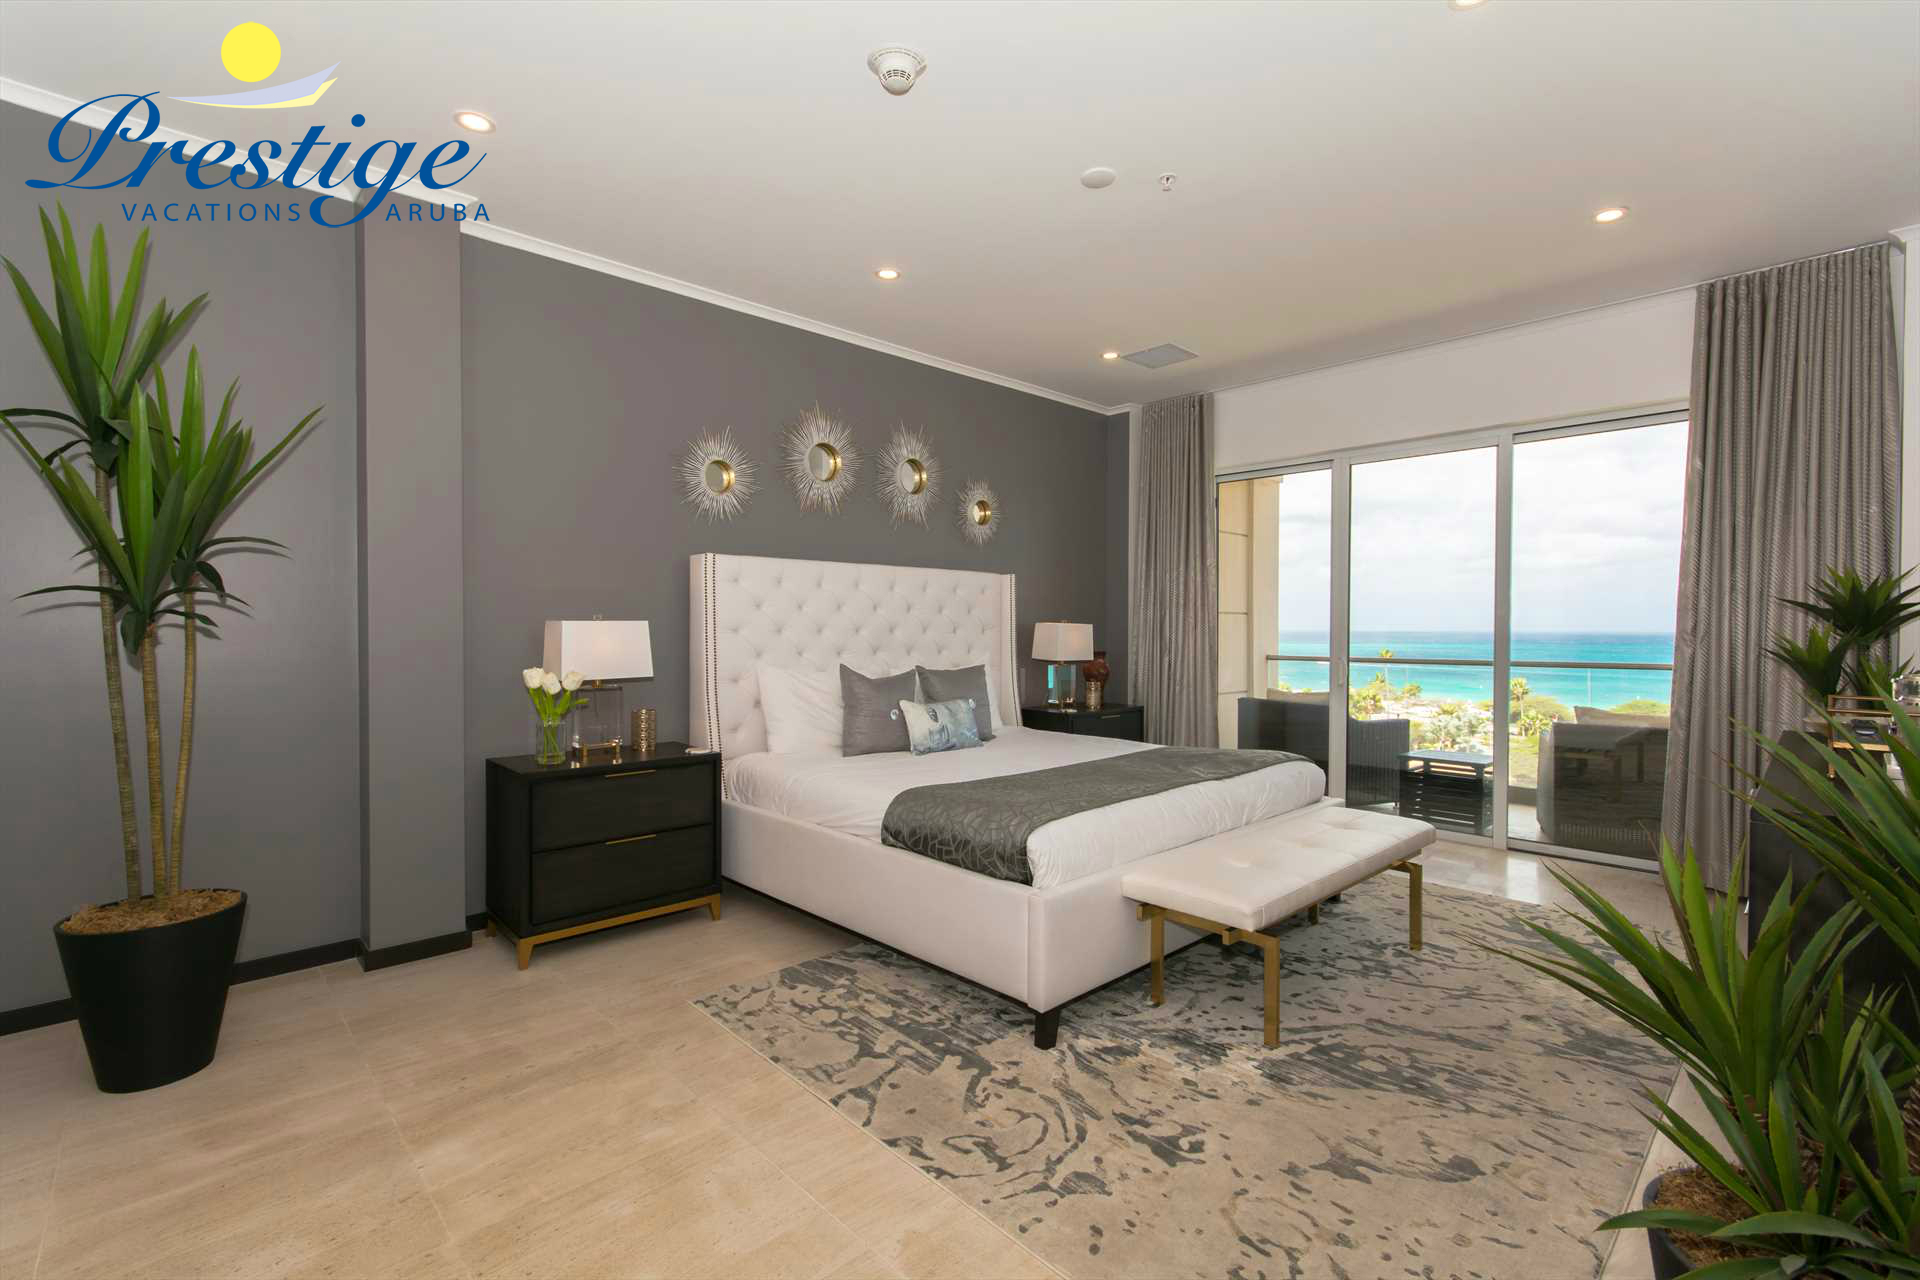 The master bedroom with king-size bed and access to the balcony